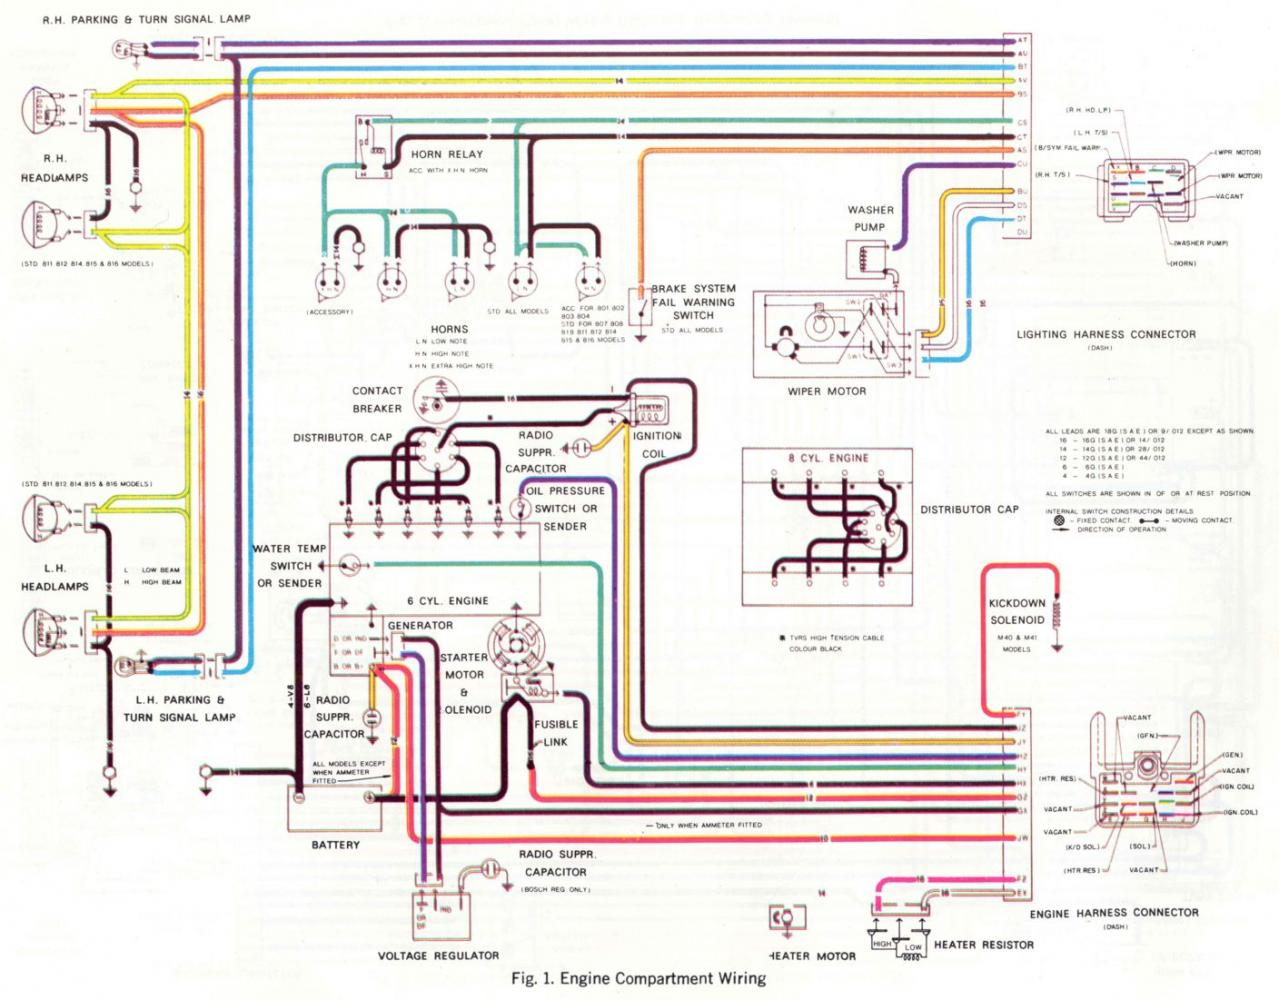 vl commodore wiring diagram vn commodore \u2022 wiring diagrams j holden vt wiring diagram at edmiracle.co